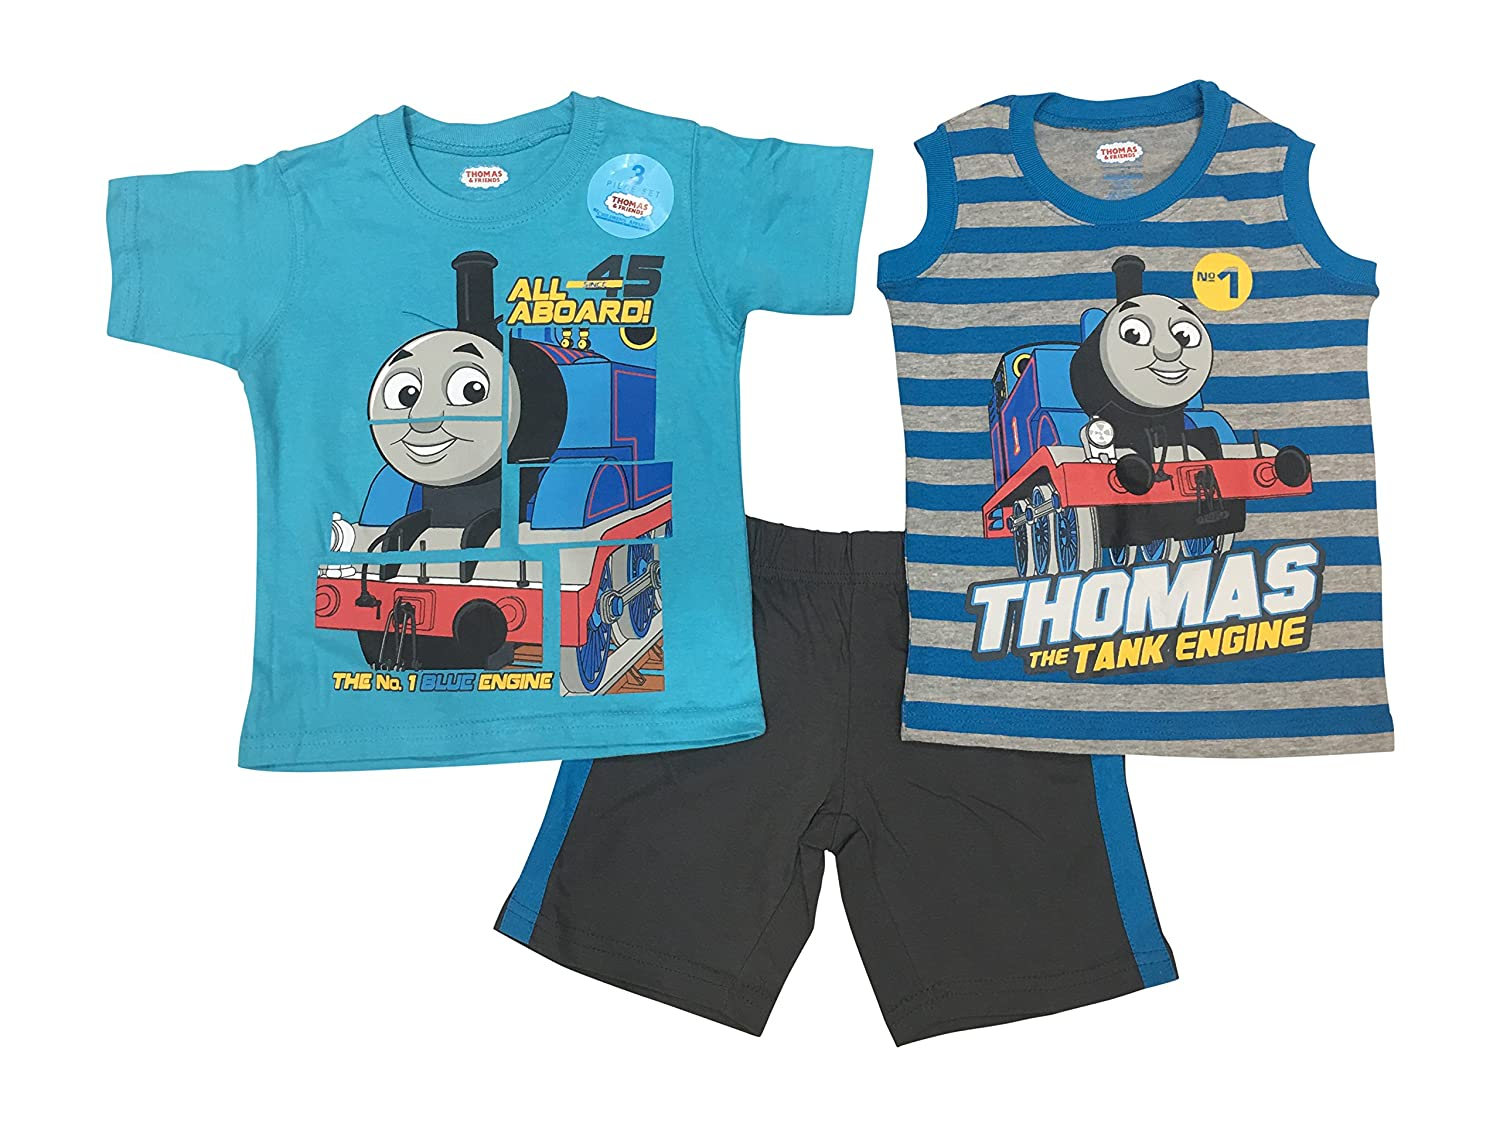 Thomas & Friends All Aboard and Railway Toddler Boys' 3 Piece Thomas Knit Jersey Short Set Sizes 2T-4T